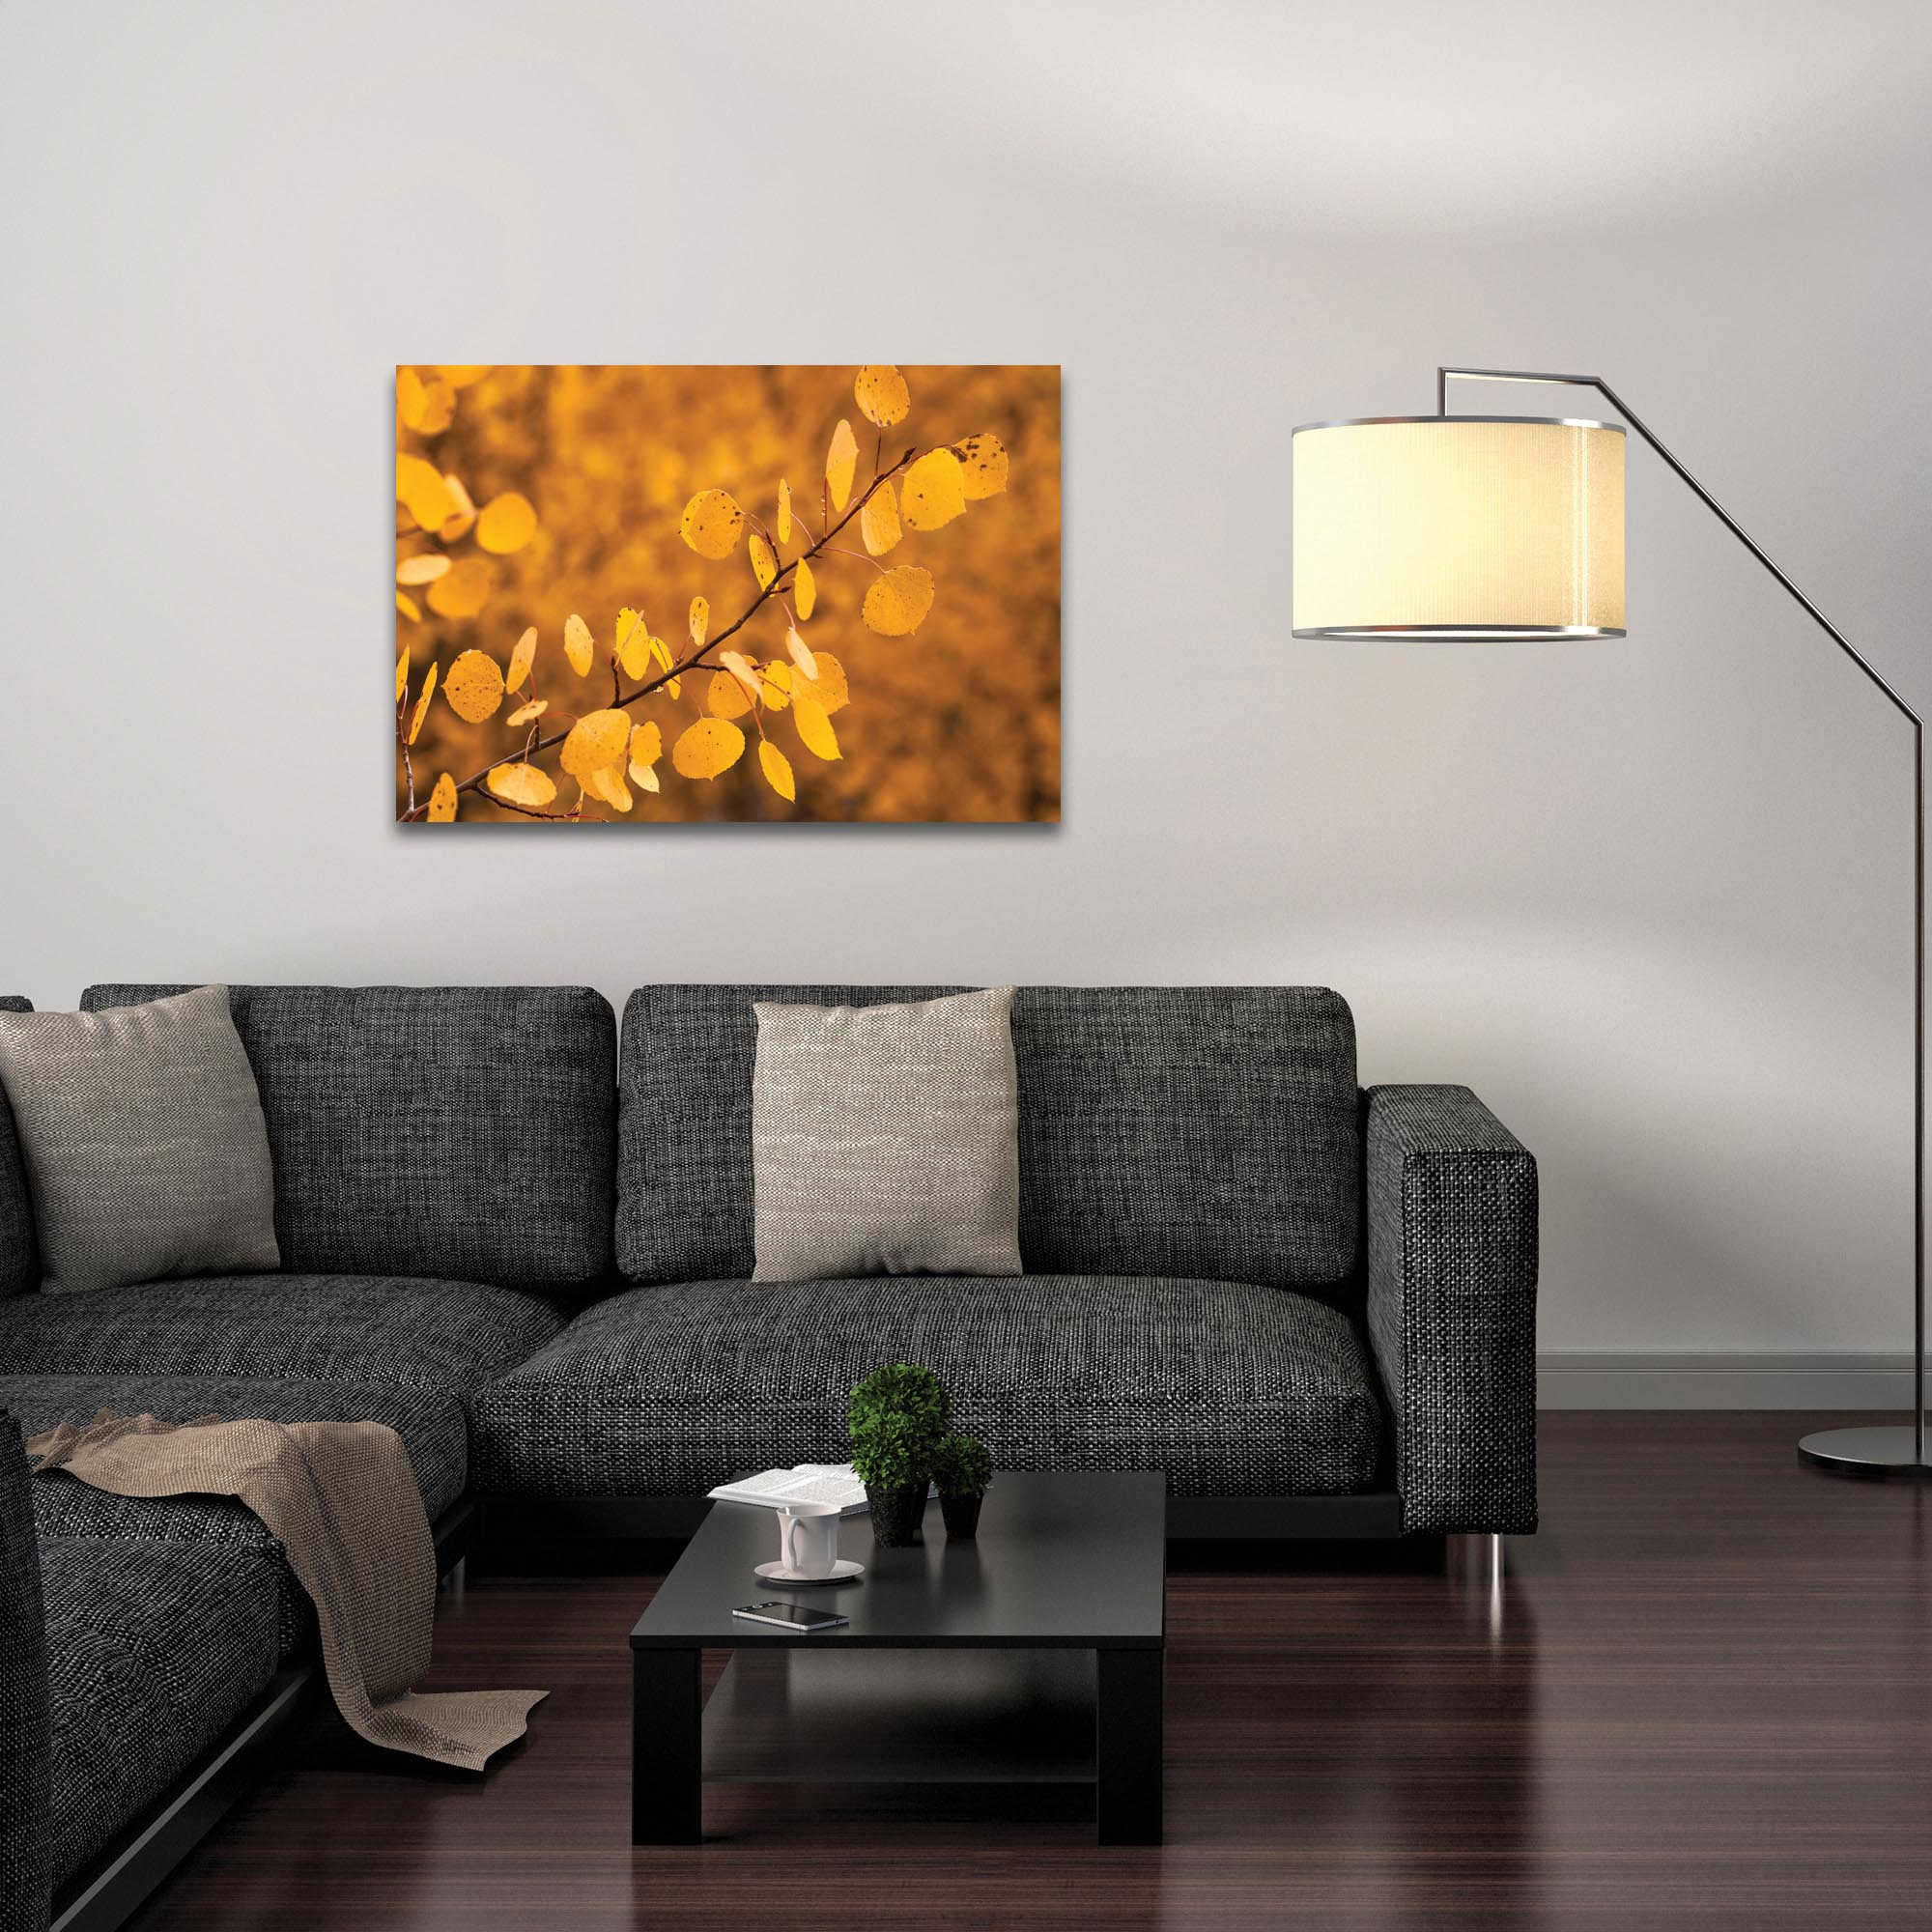 Nature Photography 'Yellow Leaves' - Autumn Leaves Art on Metal or Plexiglass - Lifestyle View